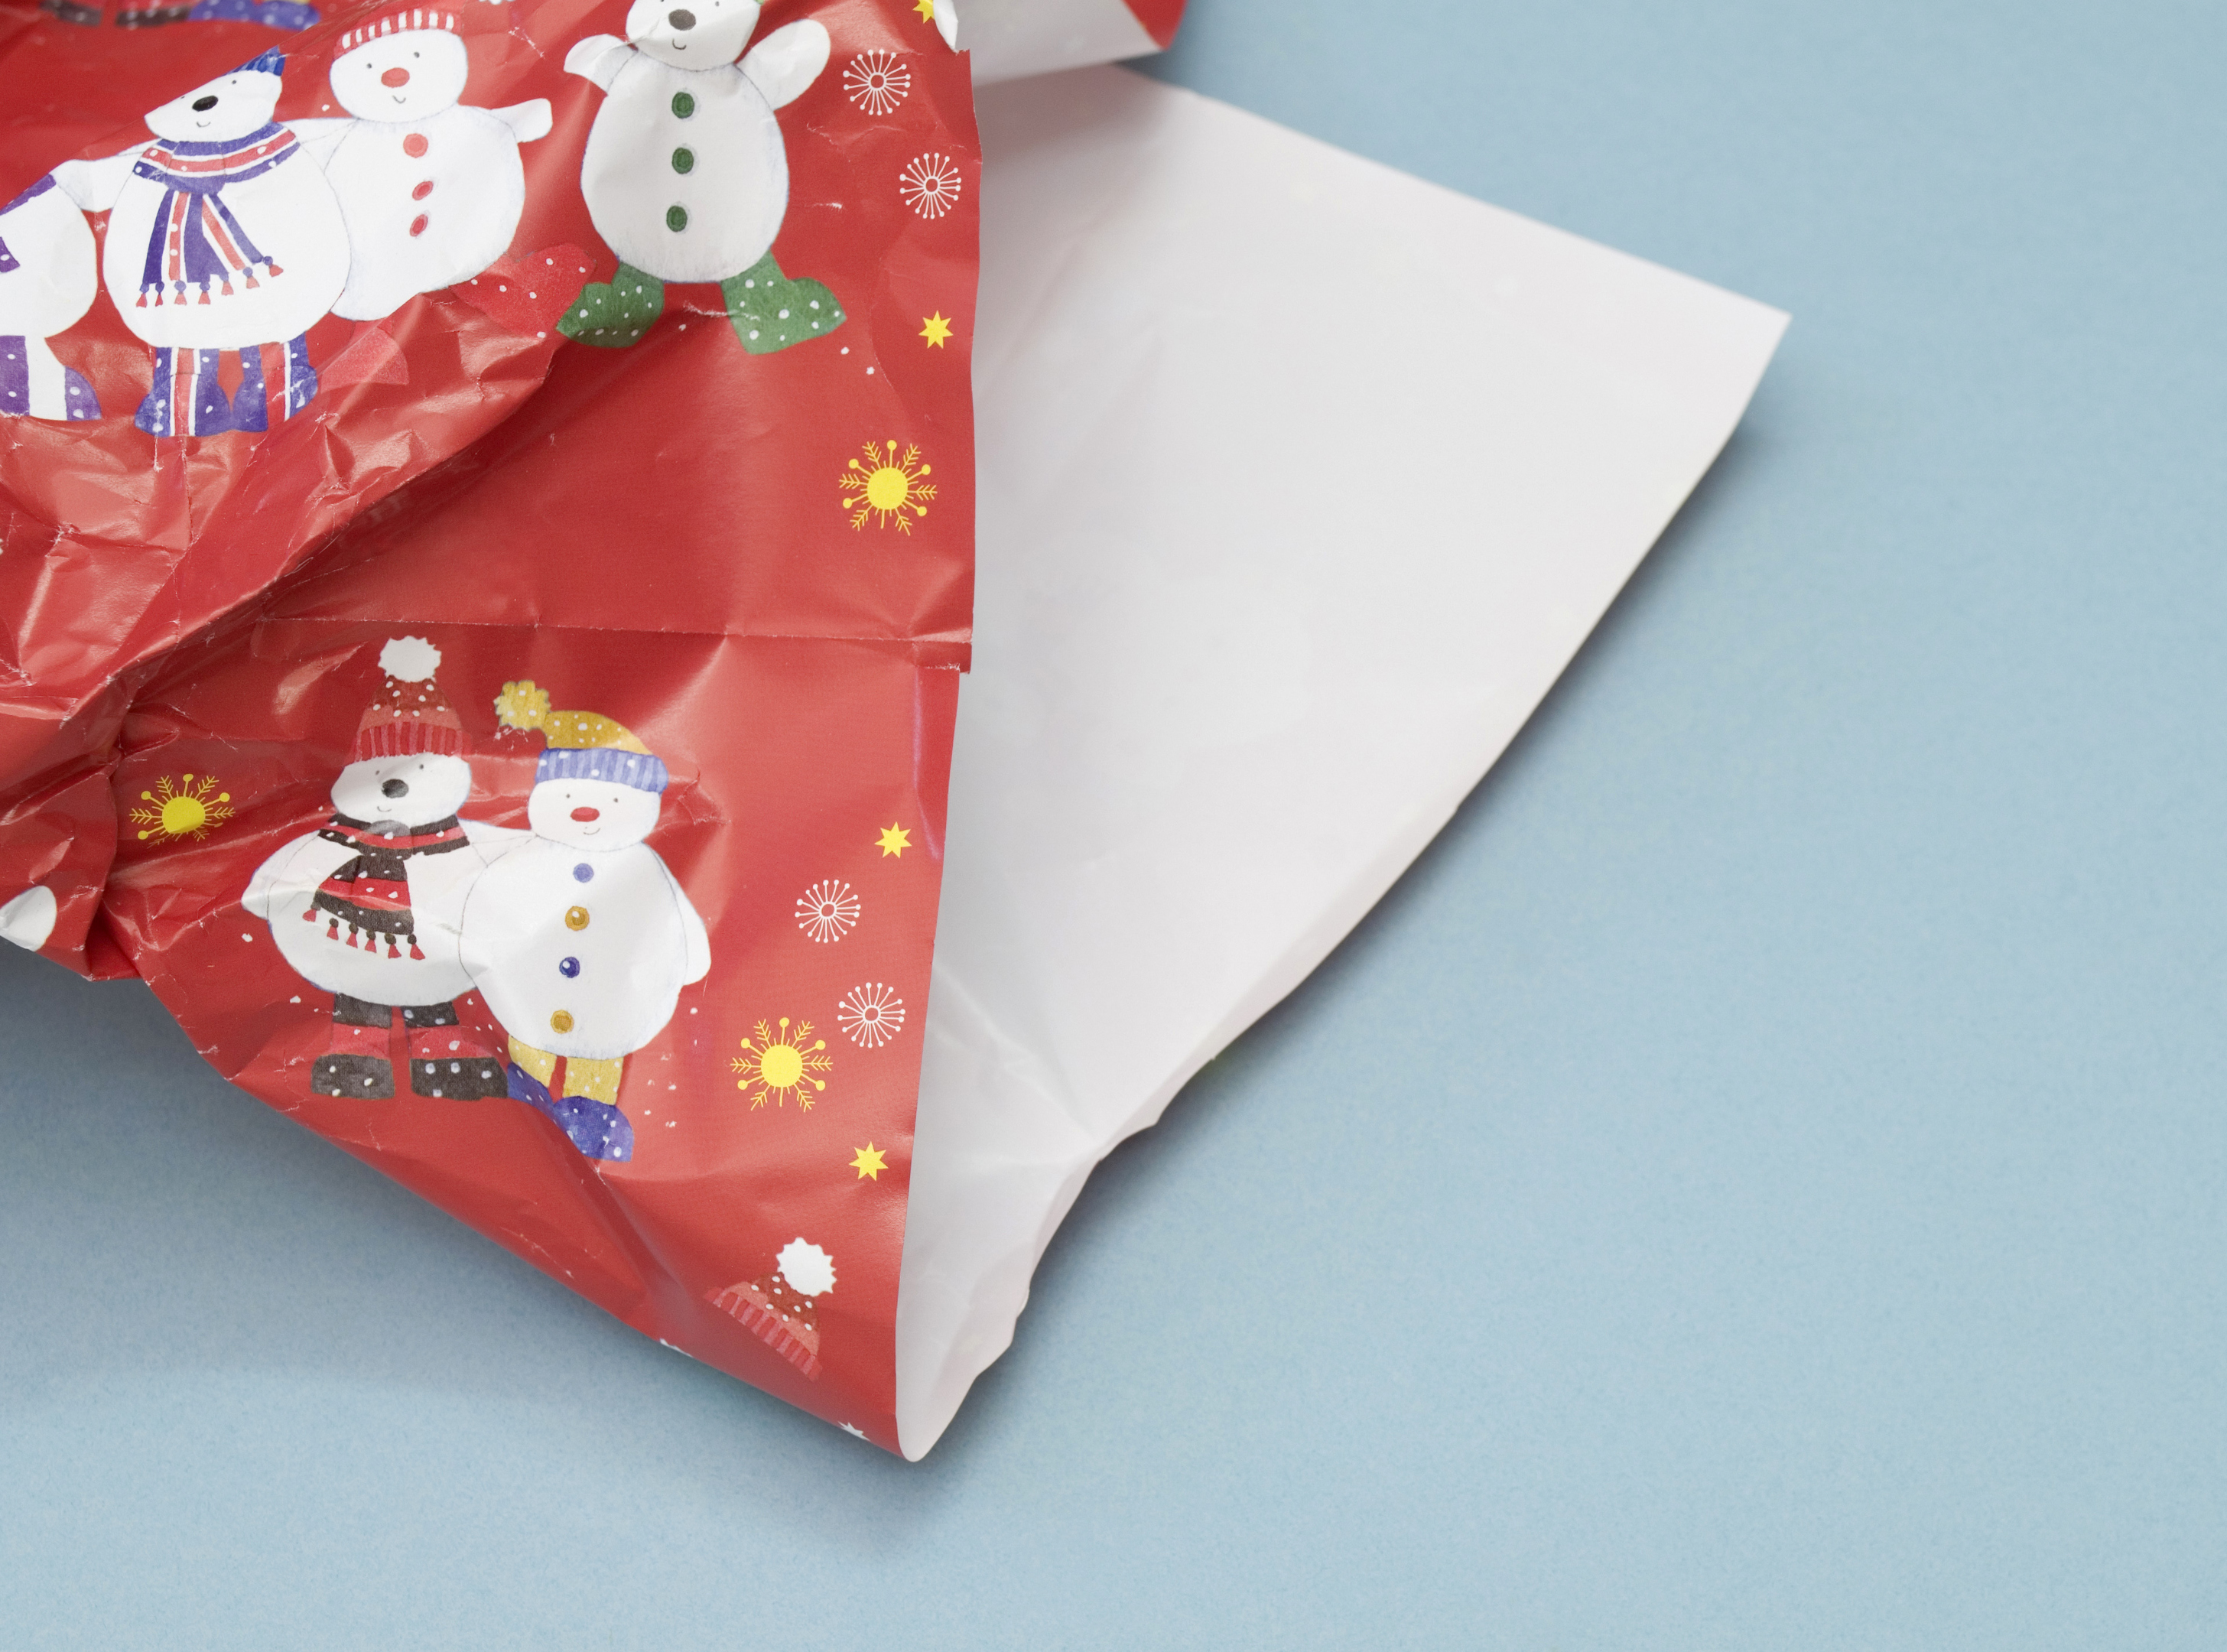 Discarded Christmas present paper (iStock)